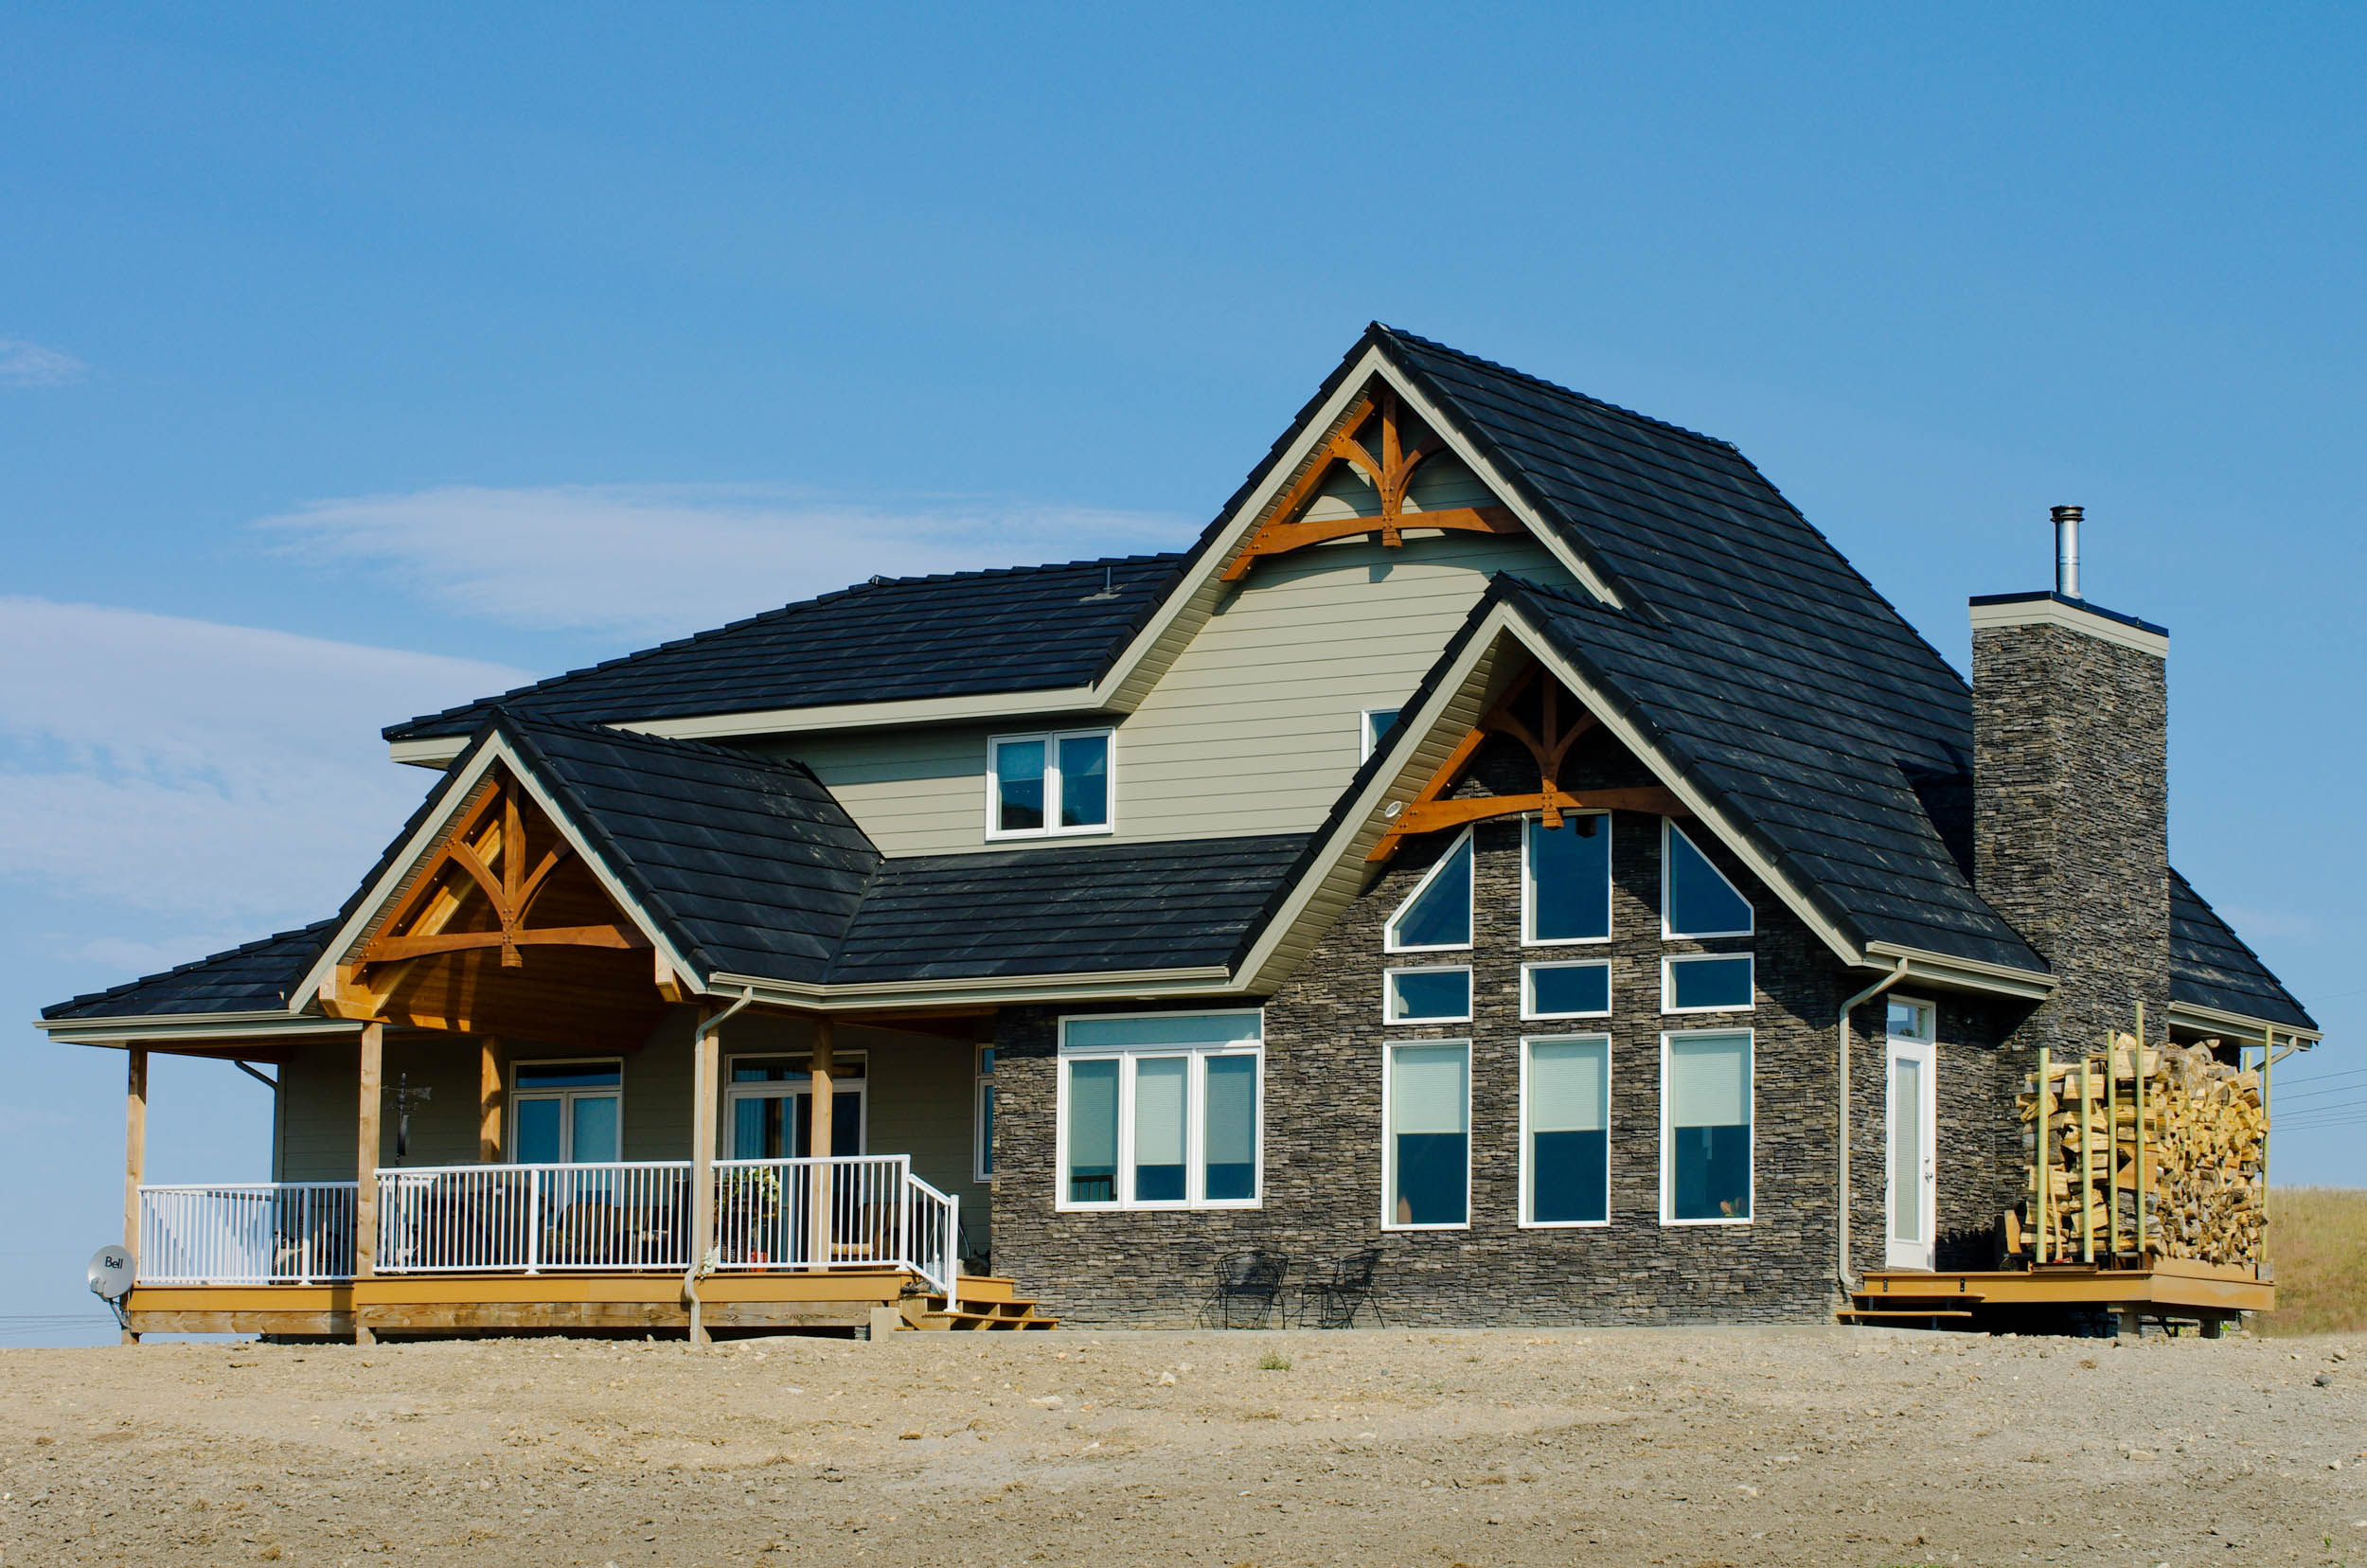 Saskatchewan custom home design jaywest country homes for Designing a custom home